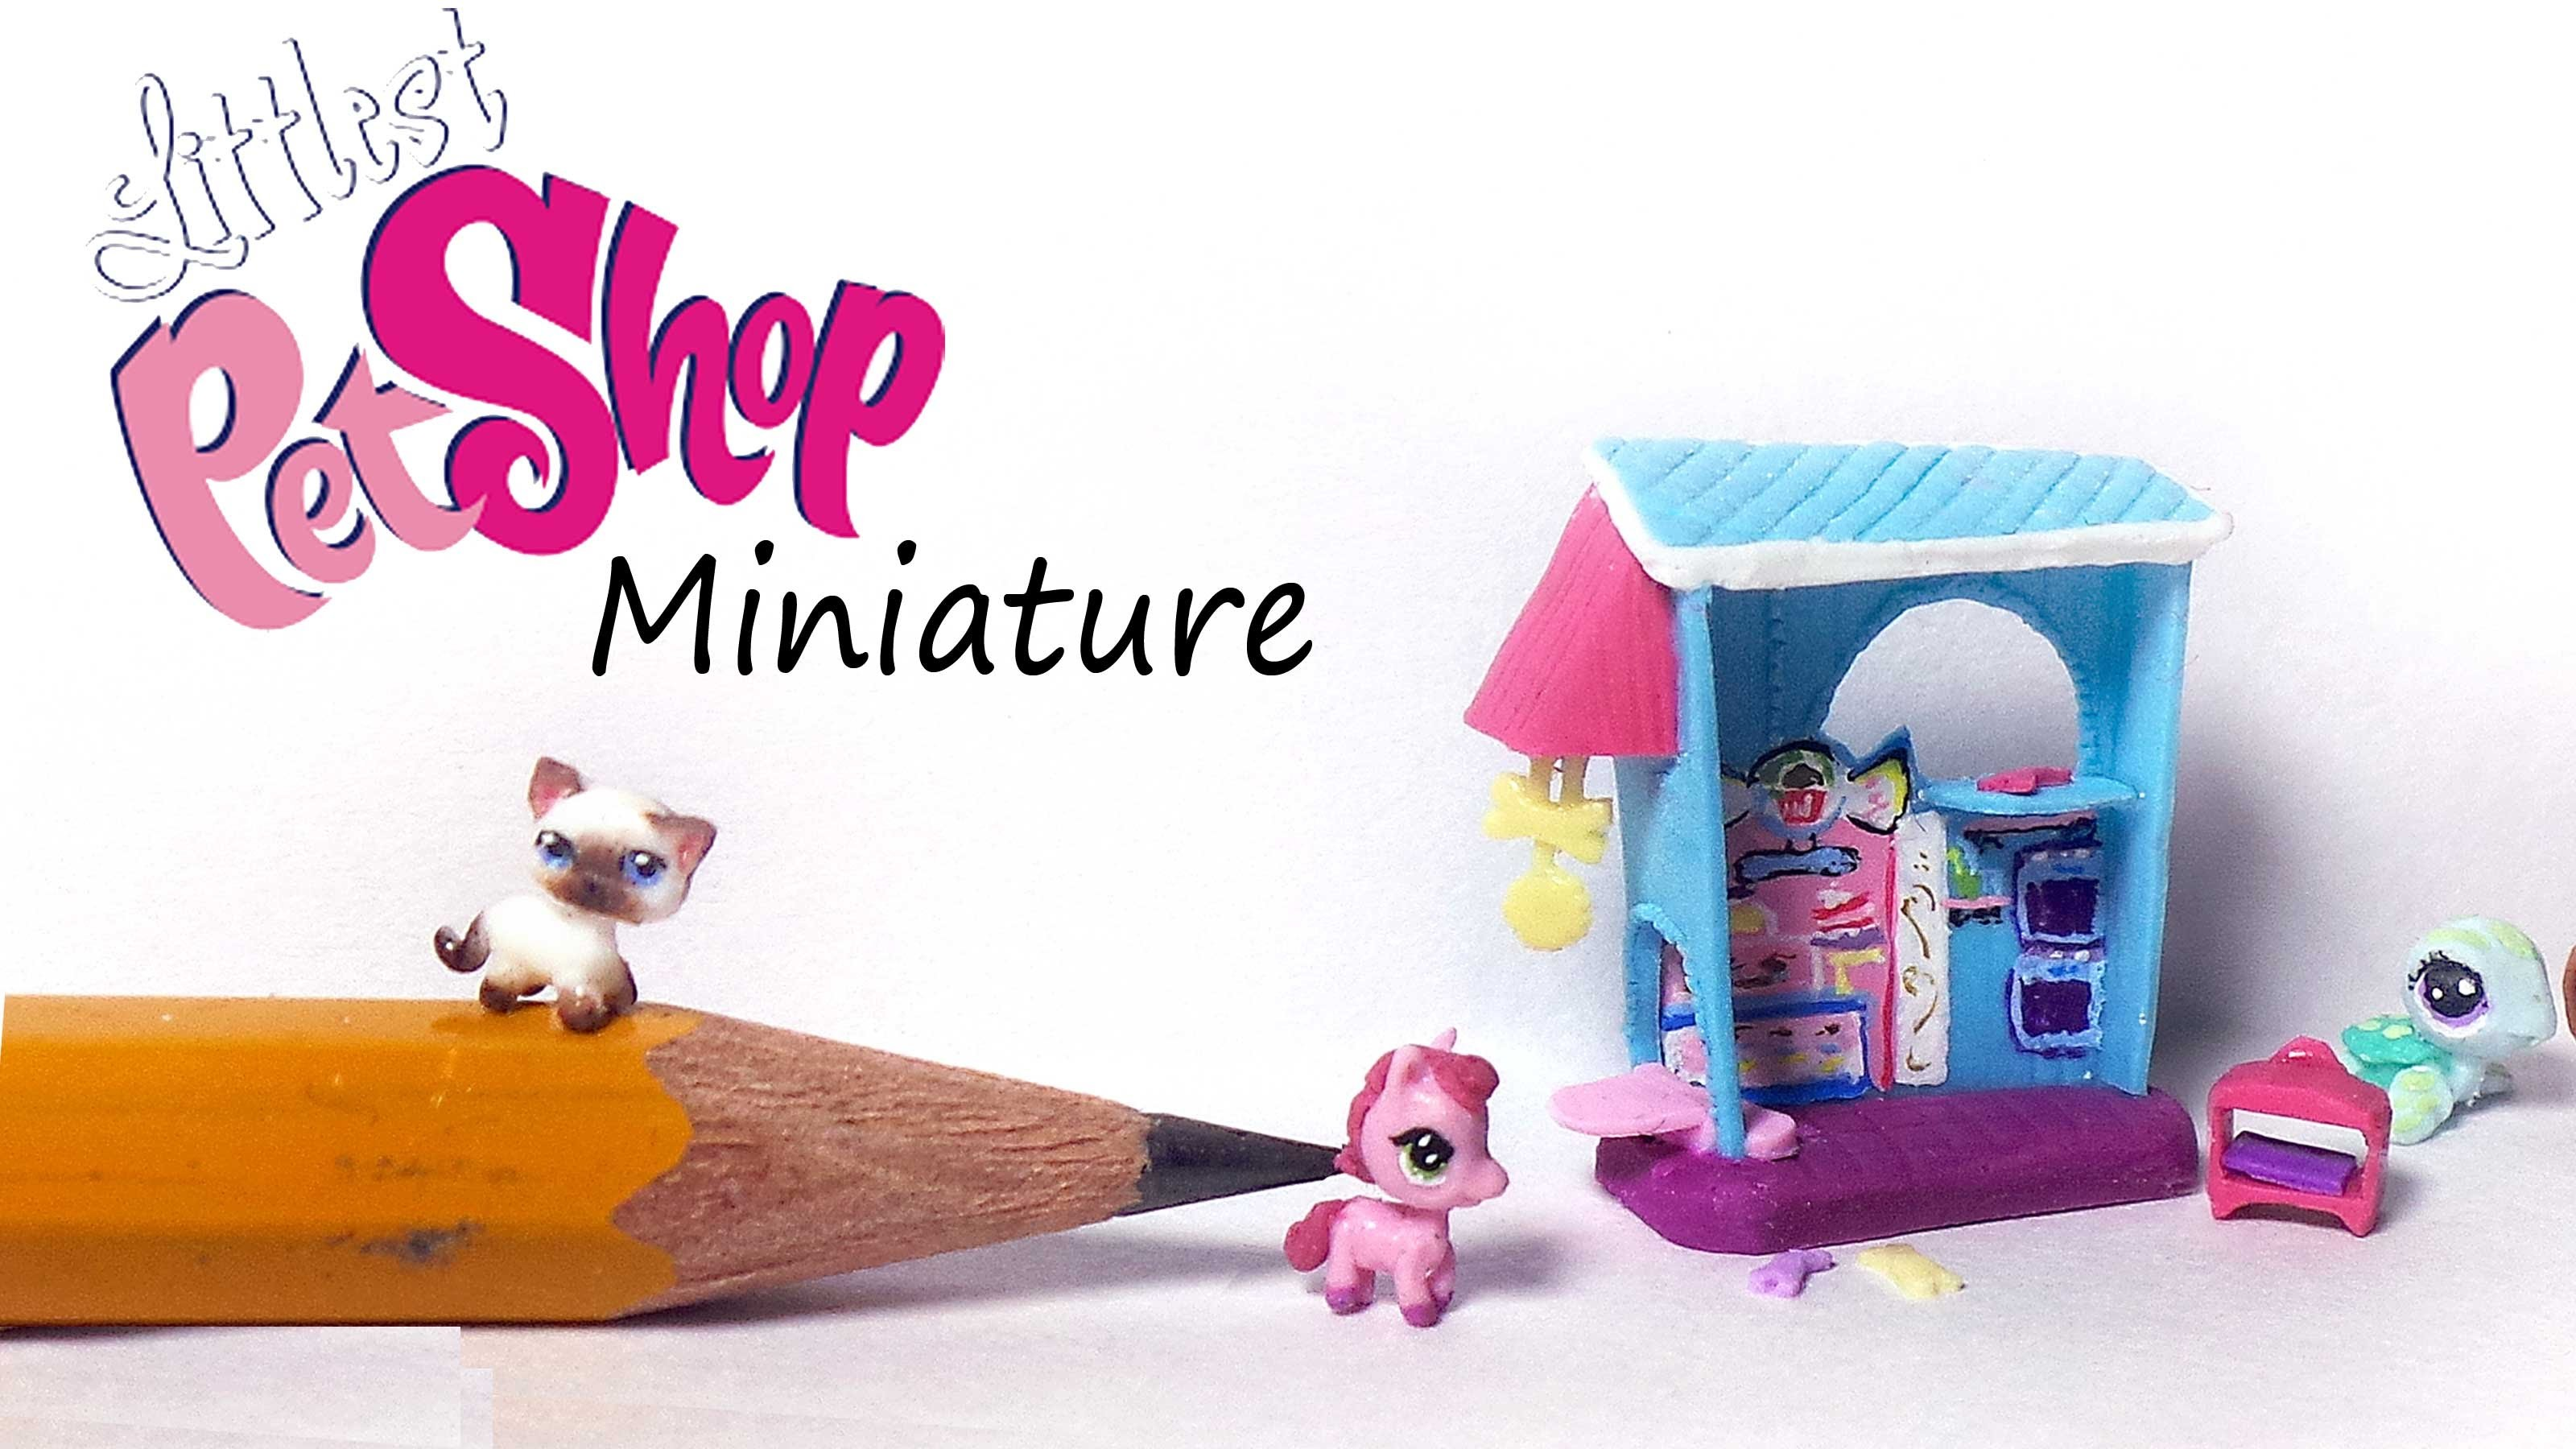 Miniature Littlest Pet Shop Inspired Polymer Clay Tutorial - Pet&Bakery Playset